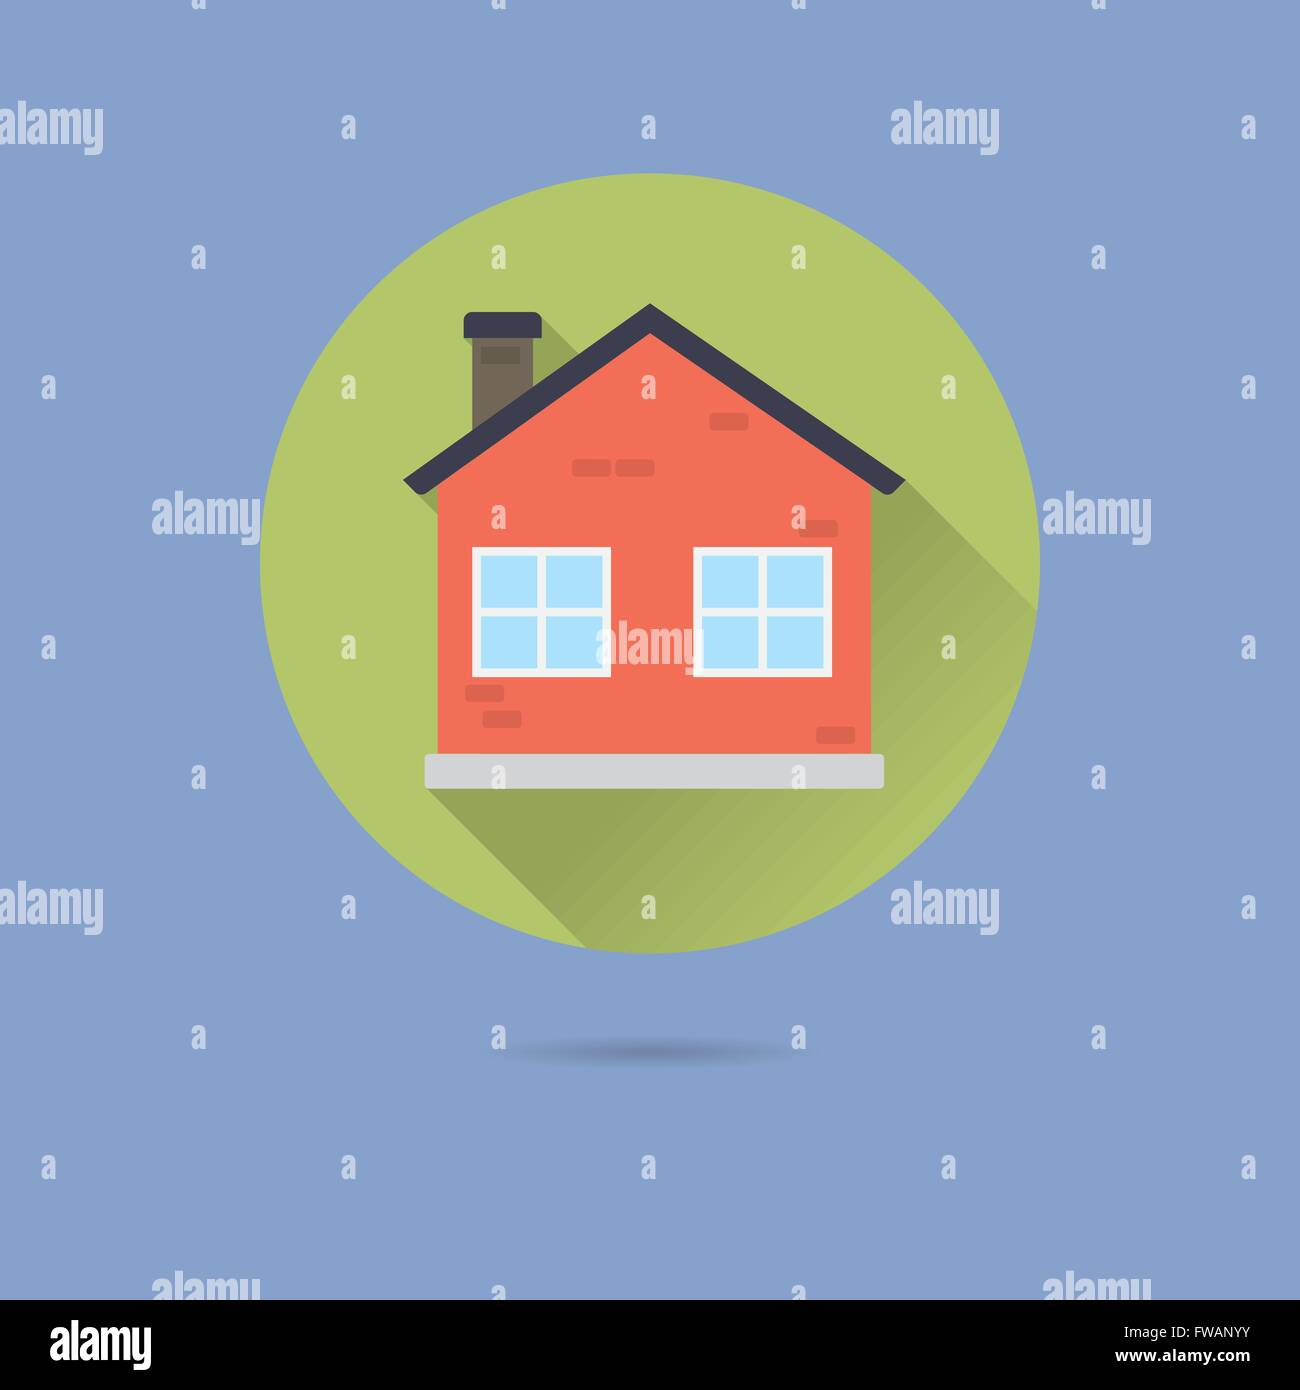 Small House Flat Design Long Shadow Vector Icon Stock Vector Art ...